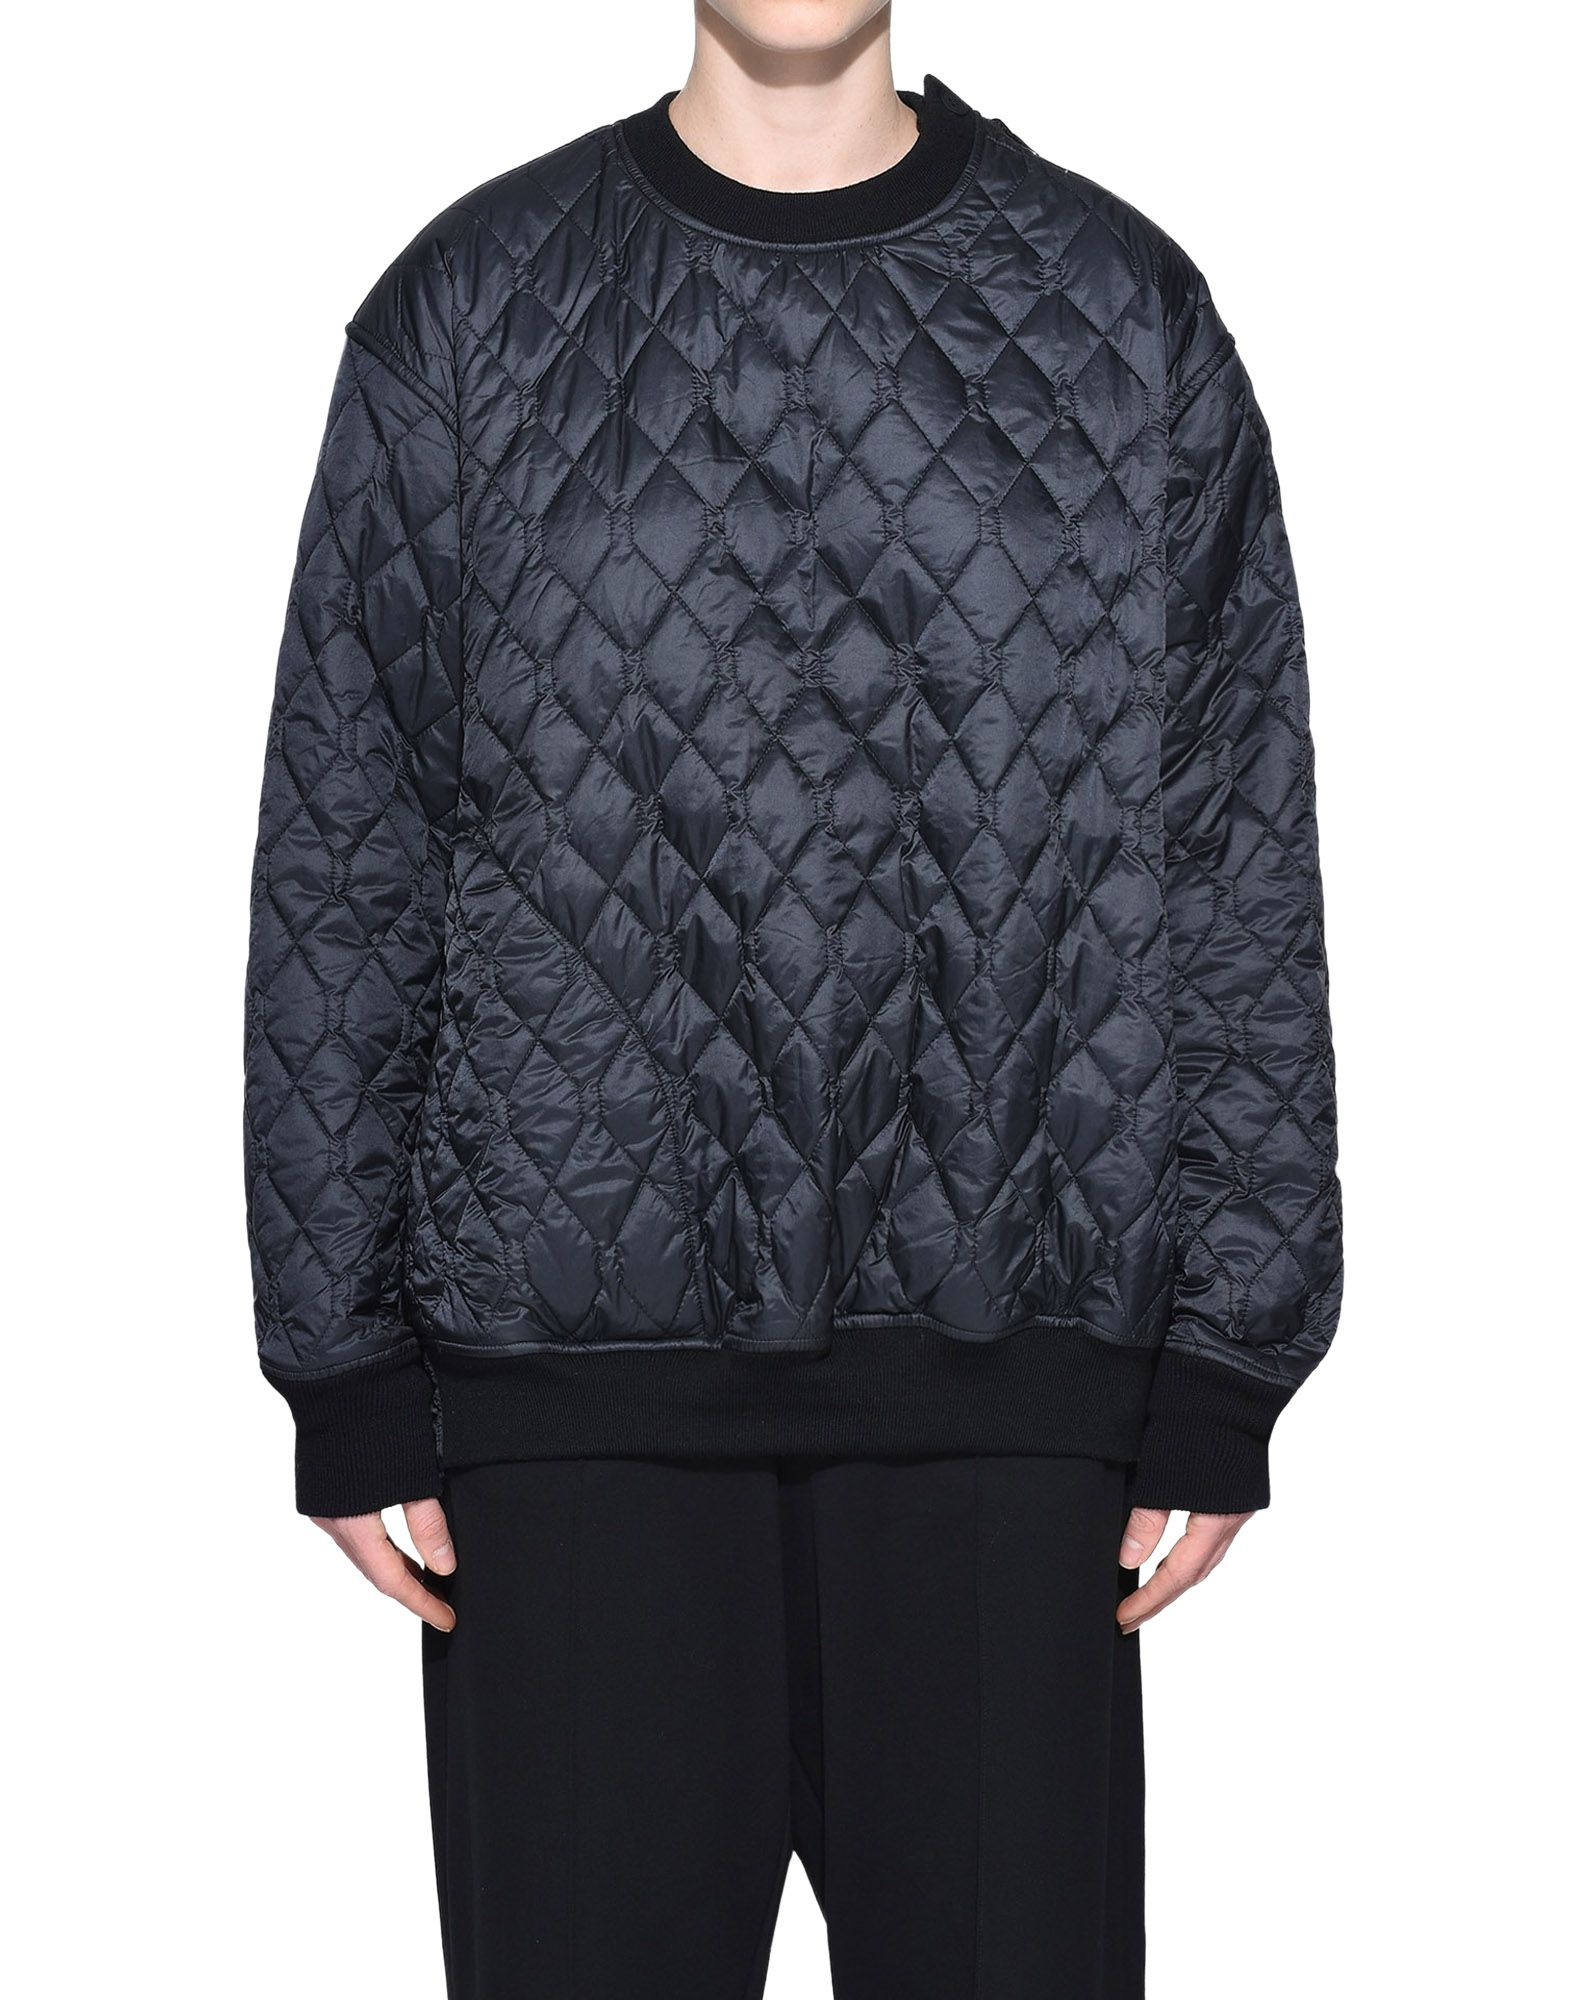 Y-3 Y-3 Quilted Sweater スウェット レディース r